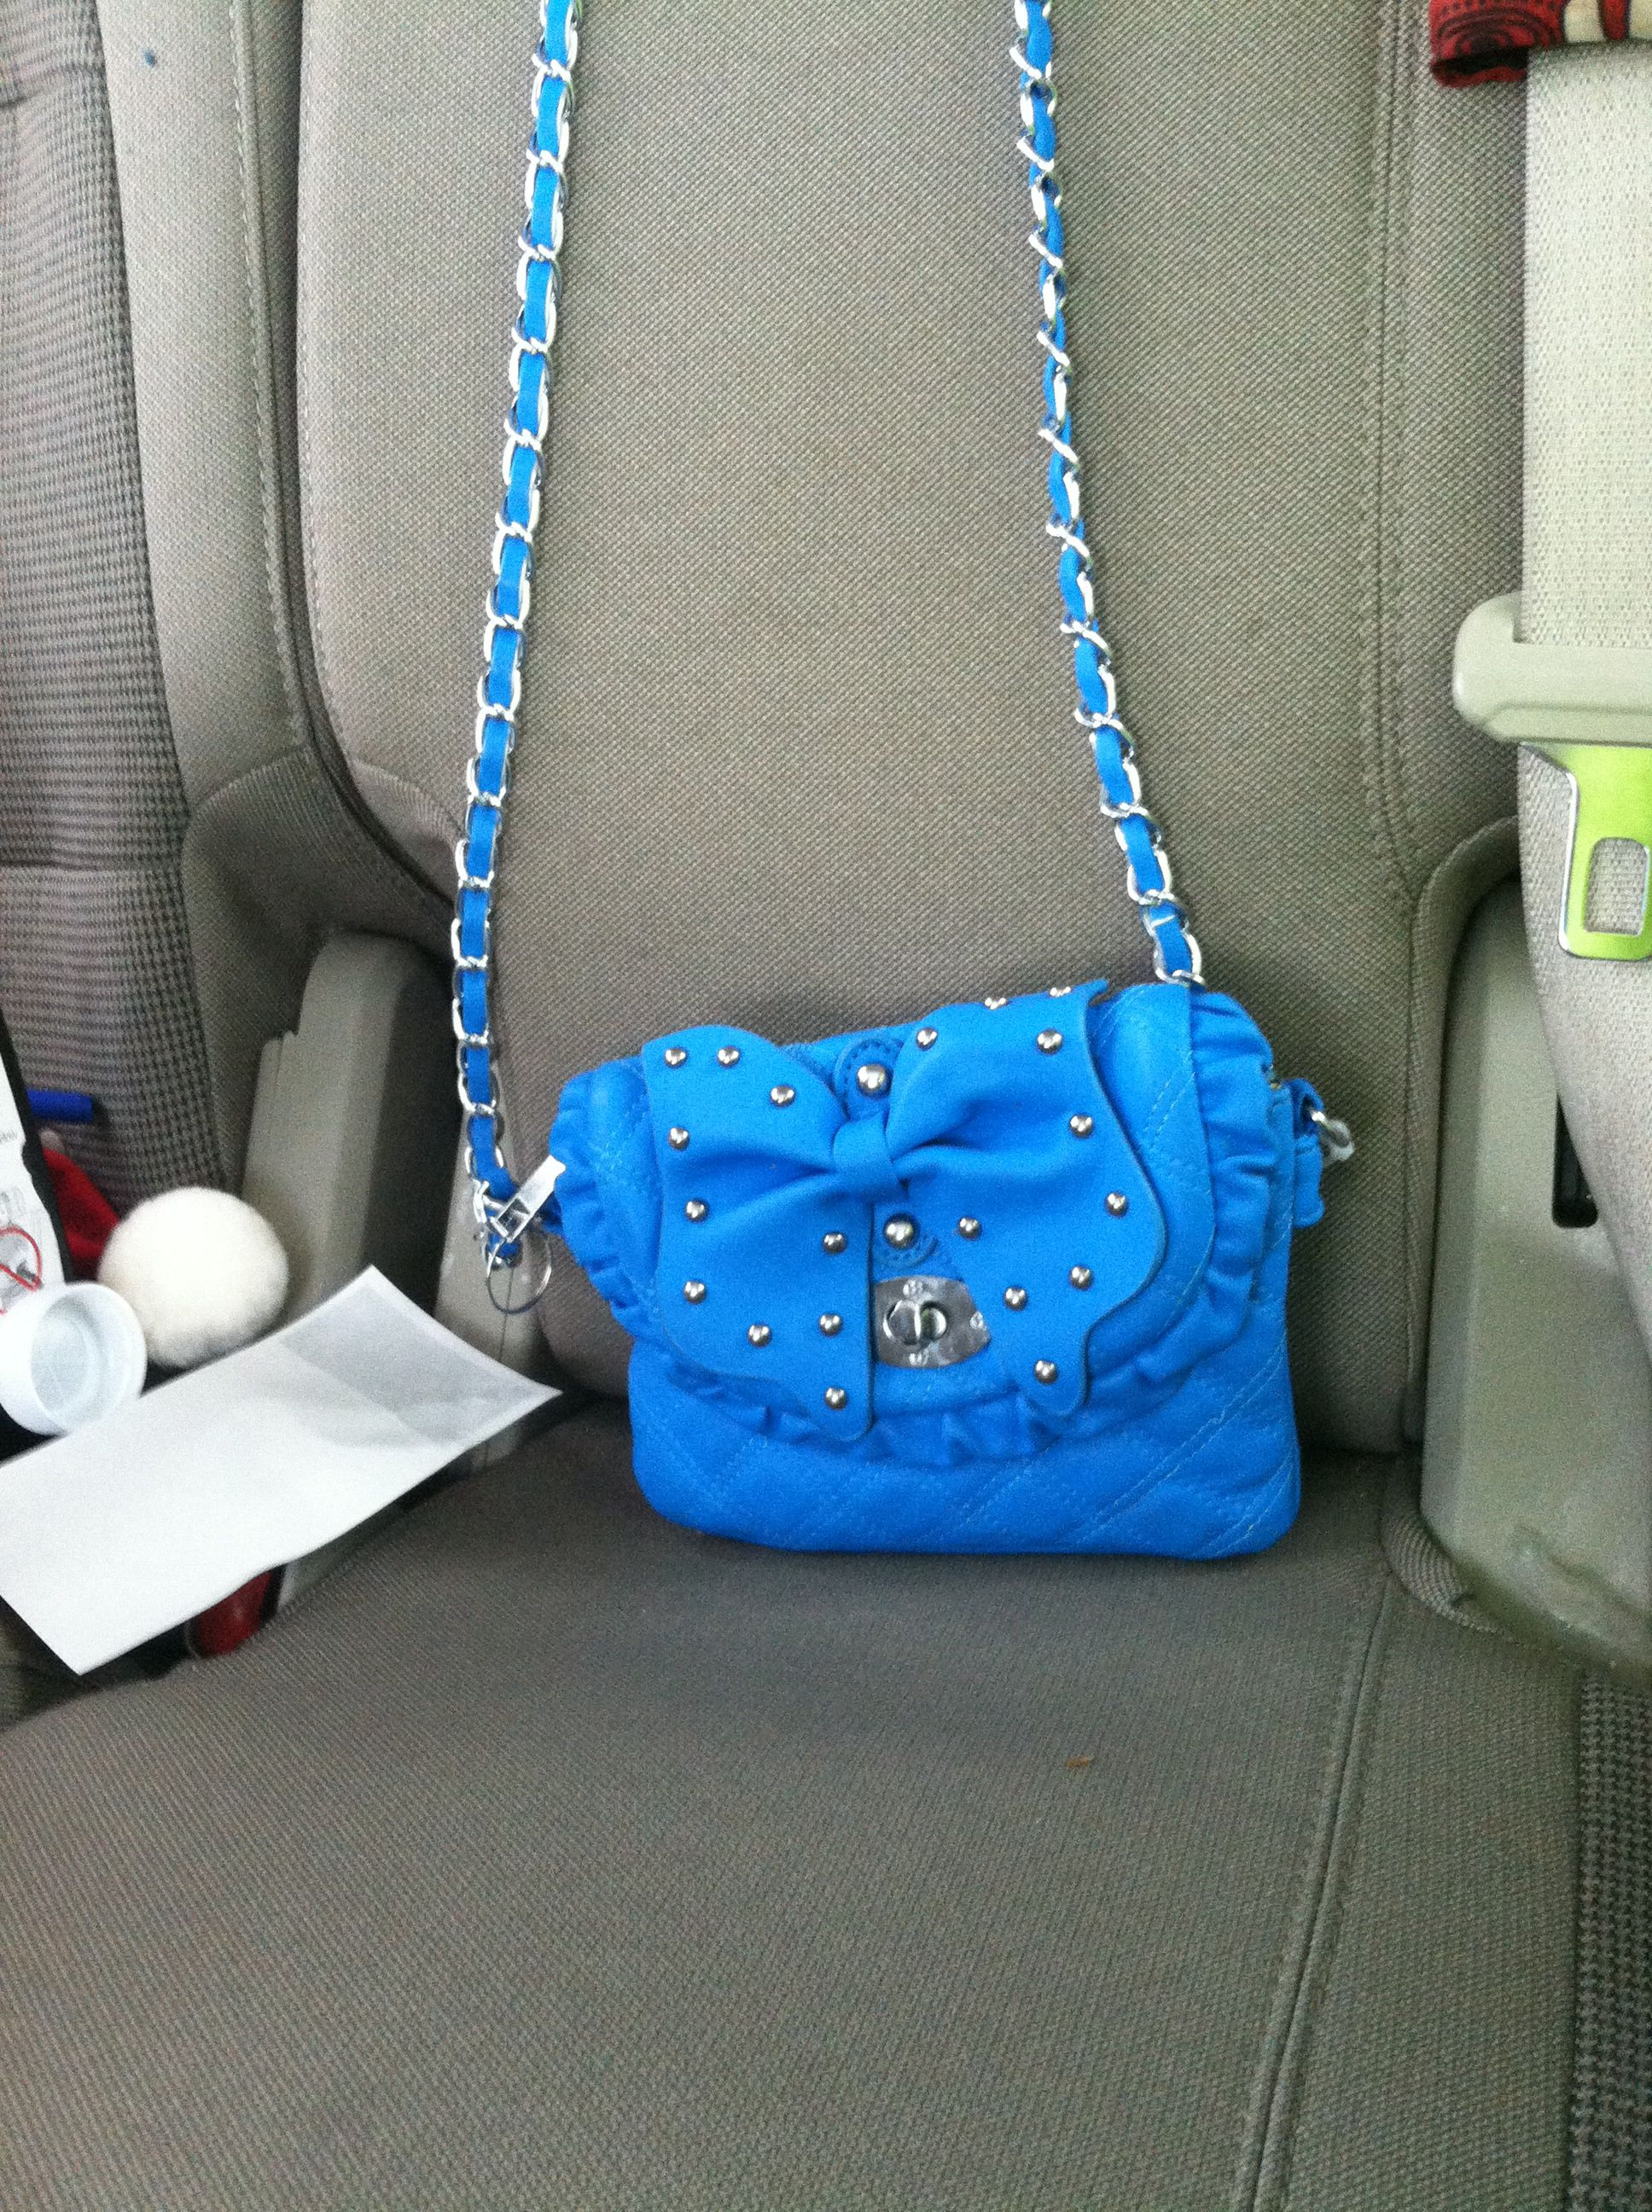 You will find this bag at plados closet